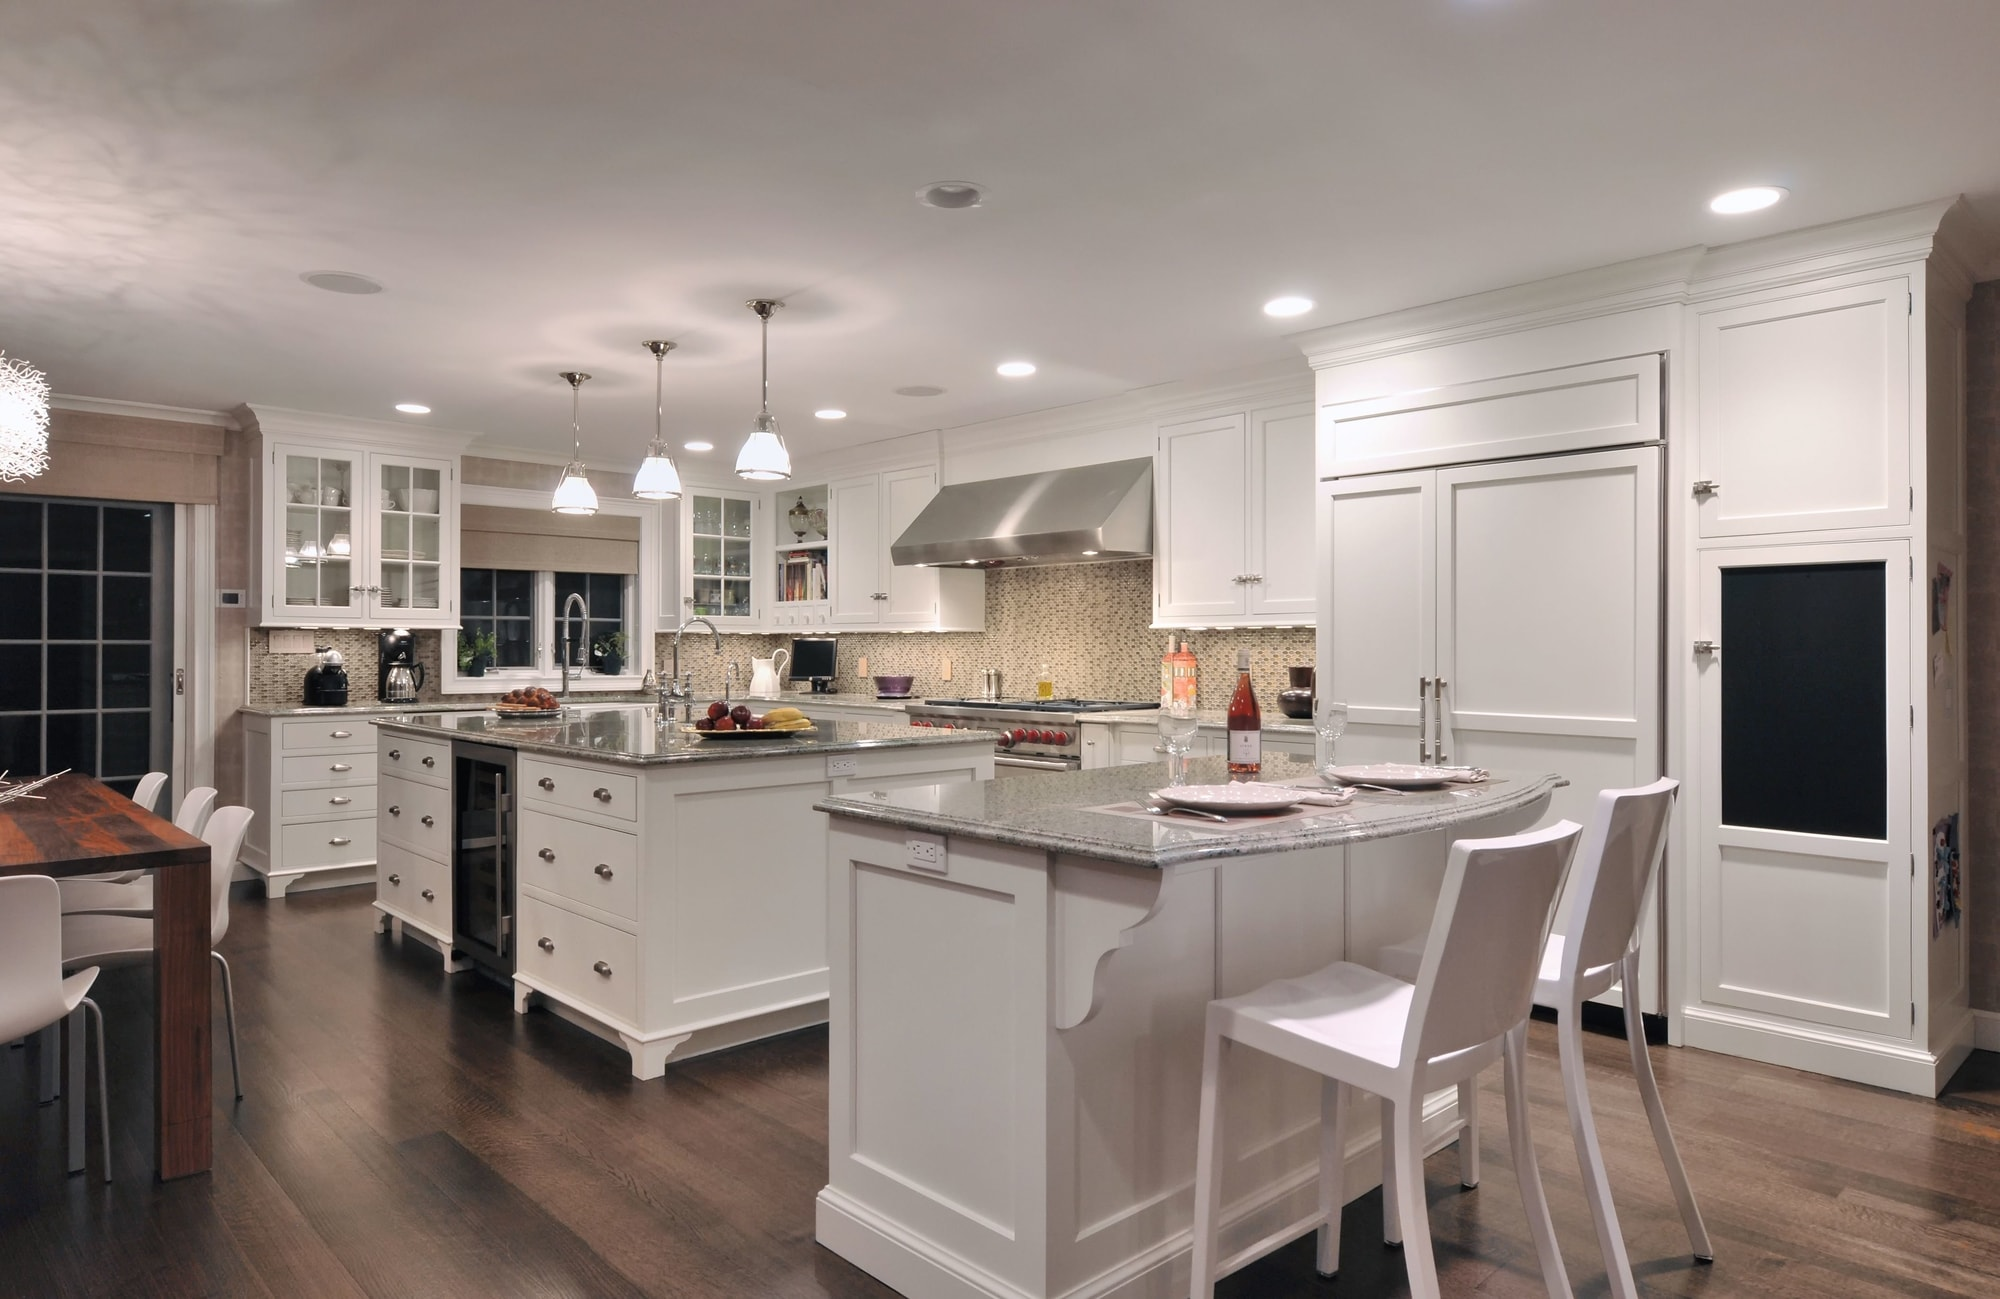 Transitional style kitchen with kitchen counter and counter stools